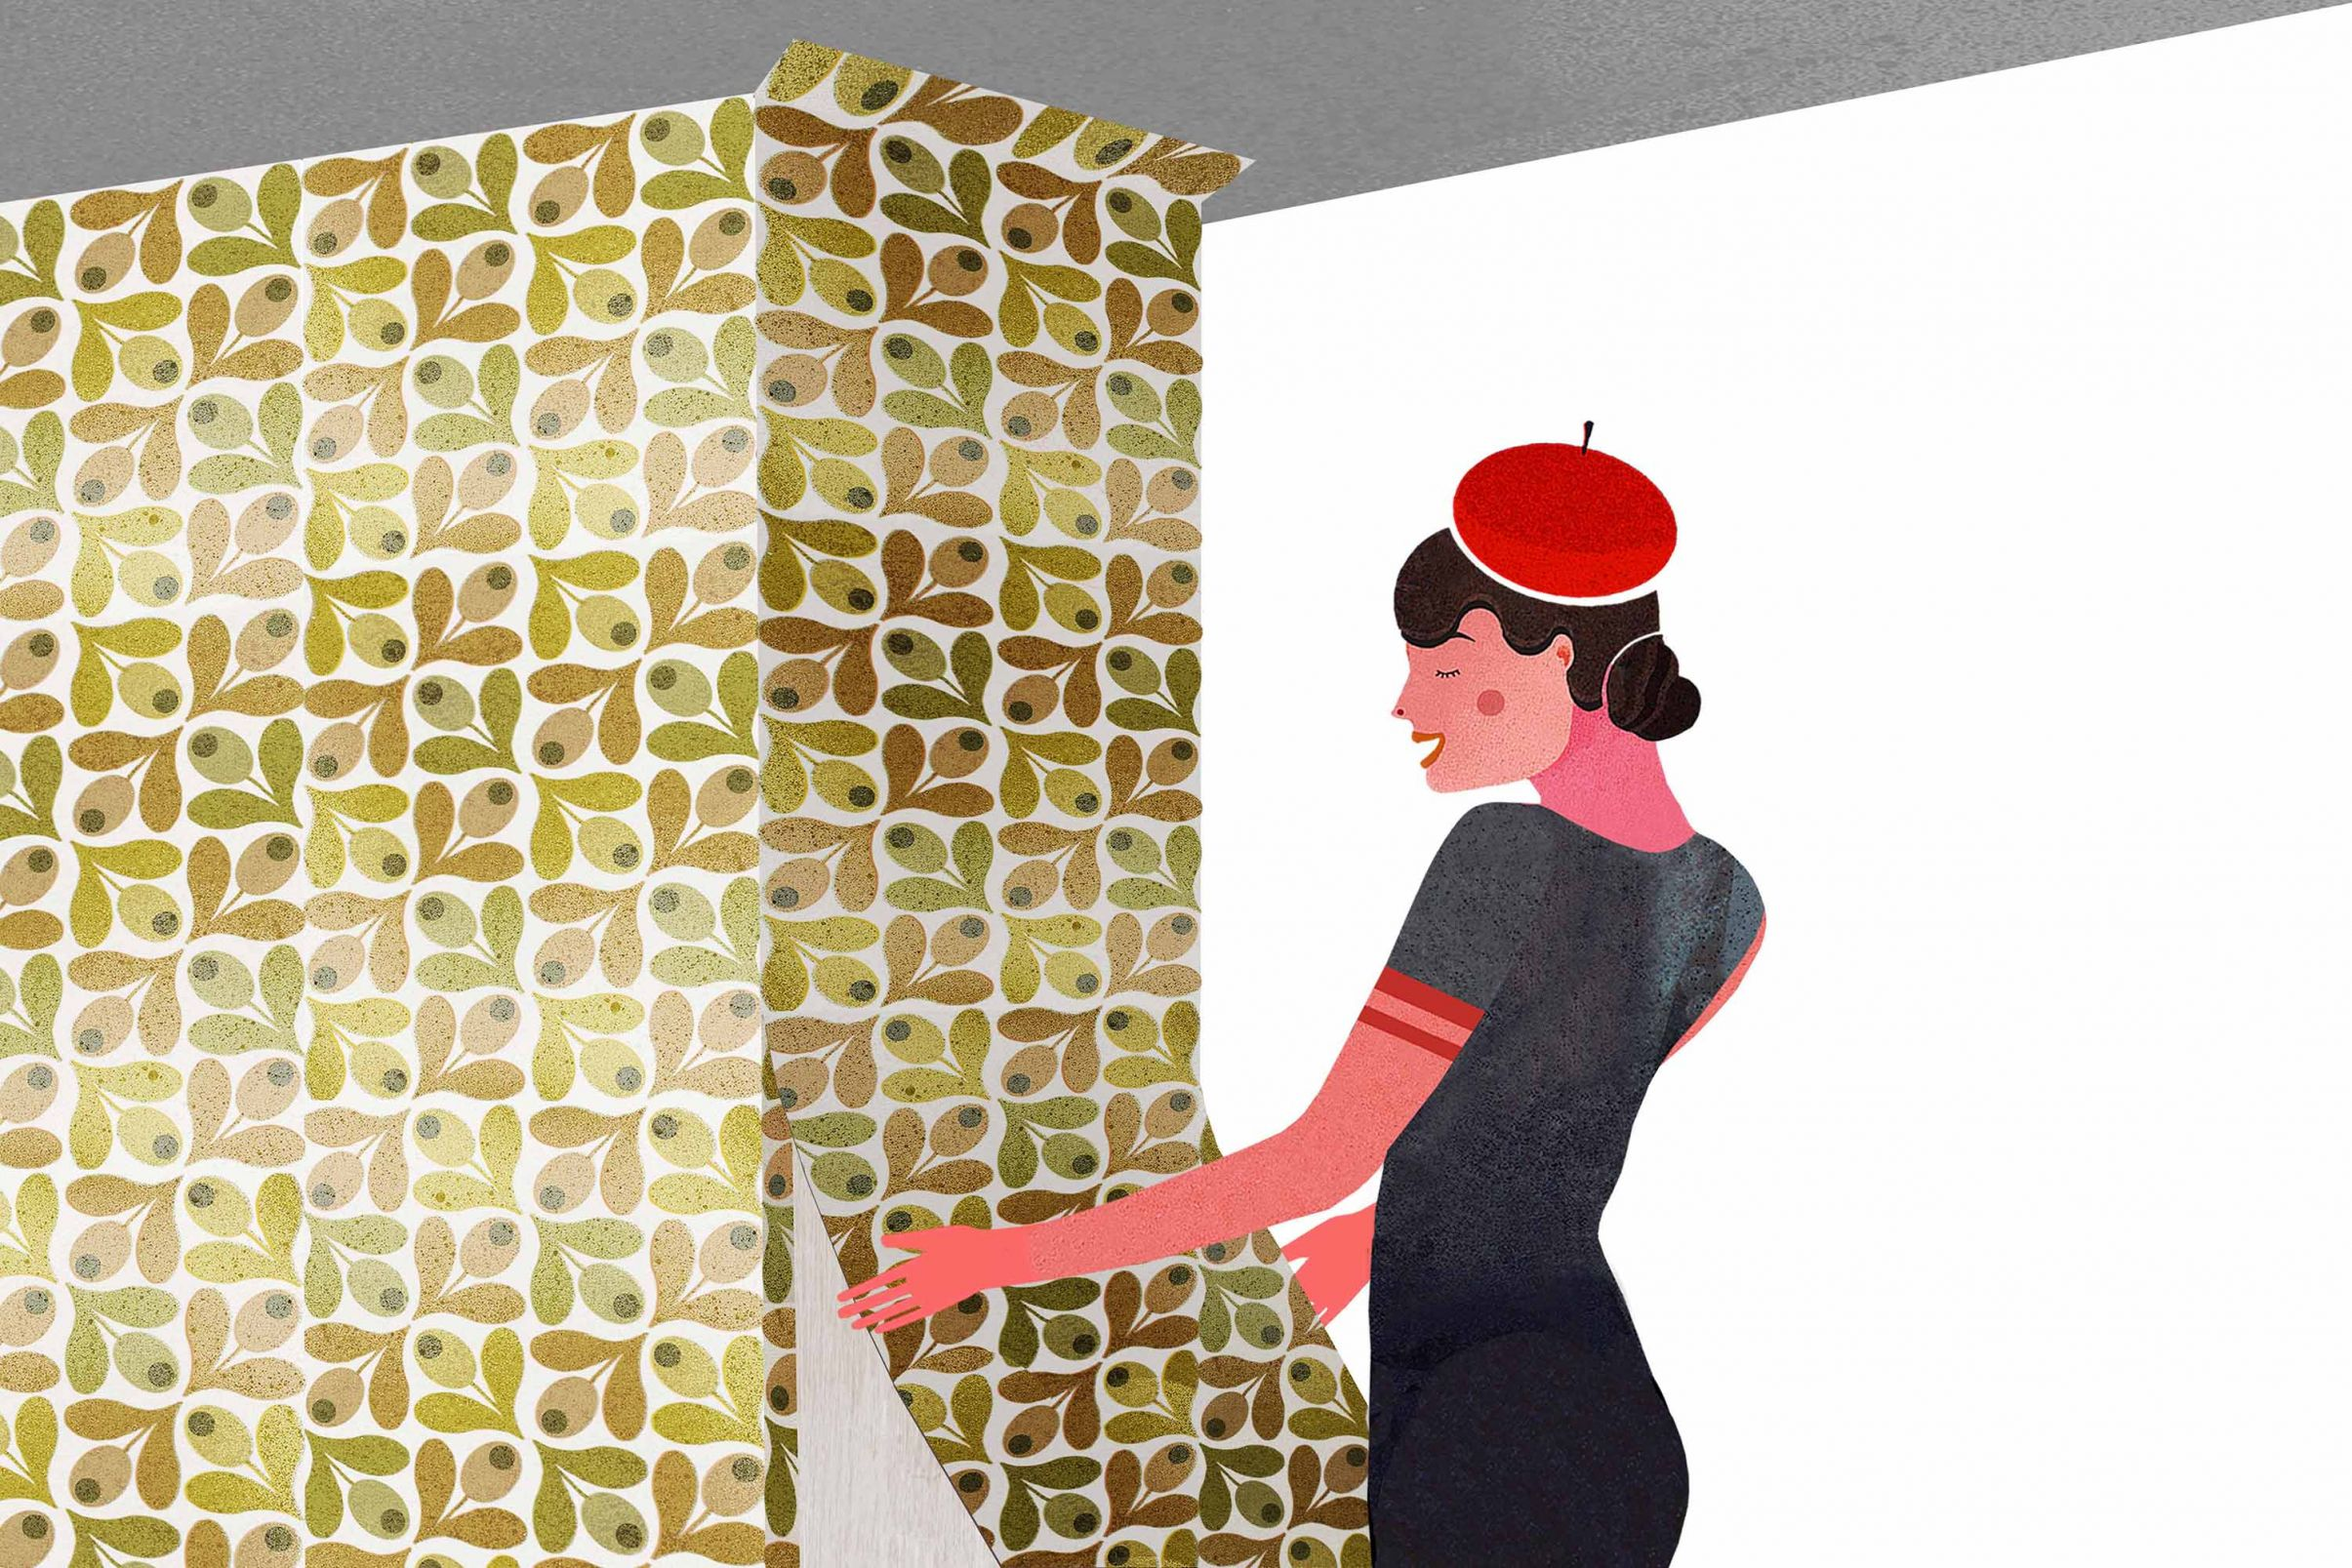 How-to-wallpaper-in-corners-Putting-a-wallpaper-length-up-around-the-outer-corners